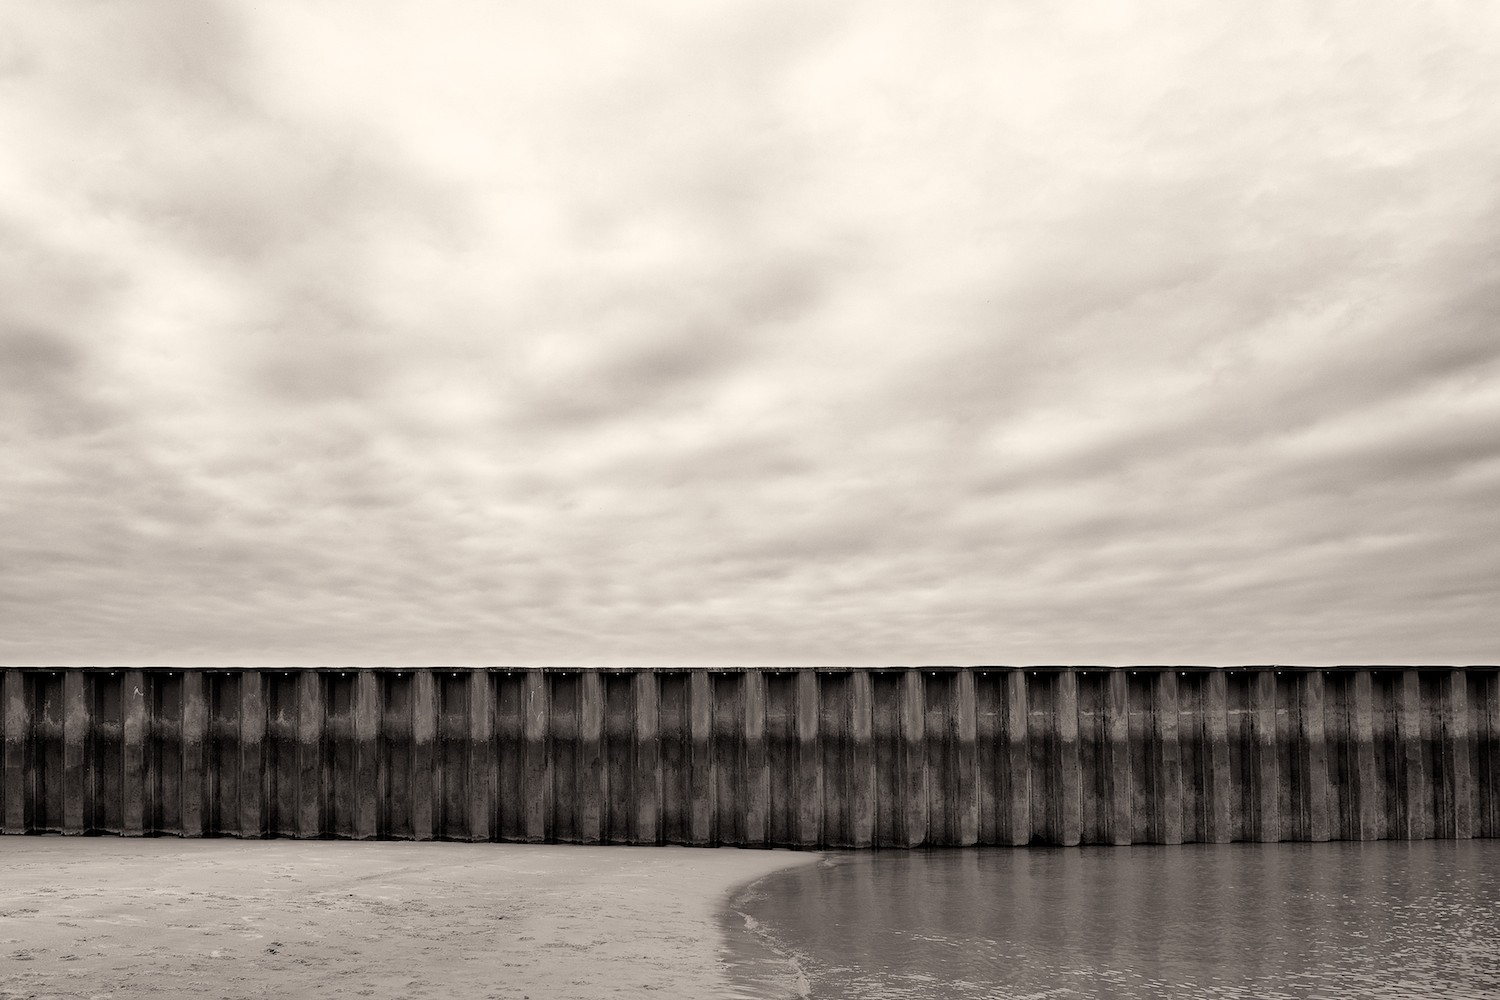 piling wall i author arnold wolfgang